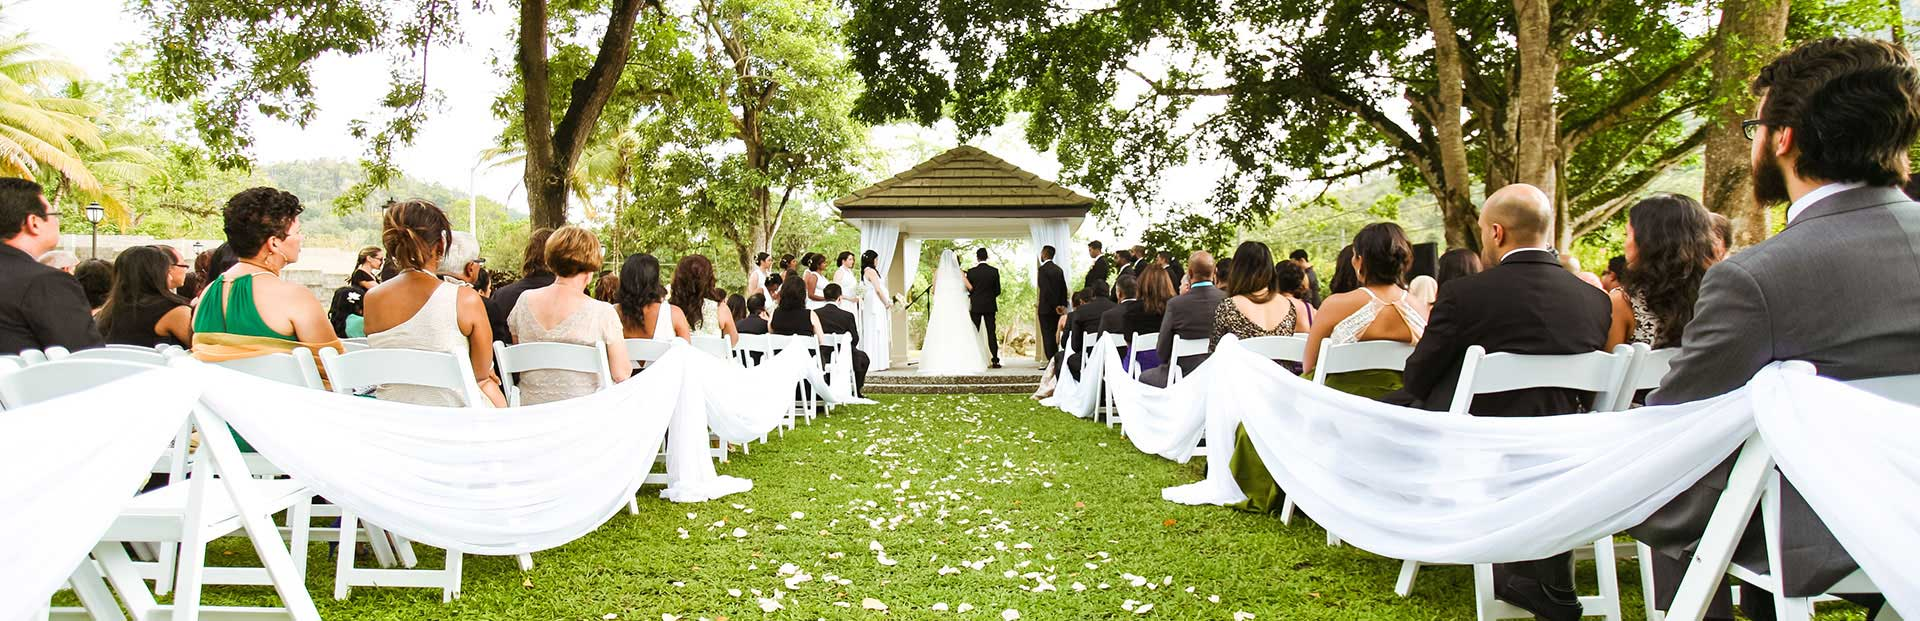 Amazing wedding ceremony in the gardens at Drew Manor, best wedding venue in Trinidad